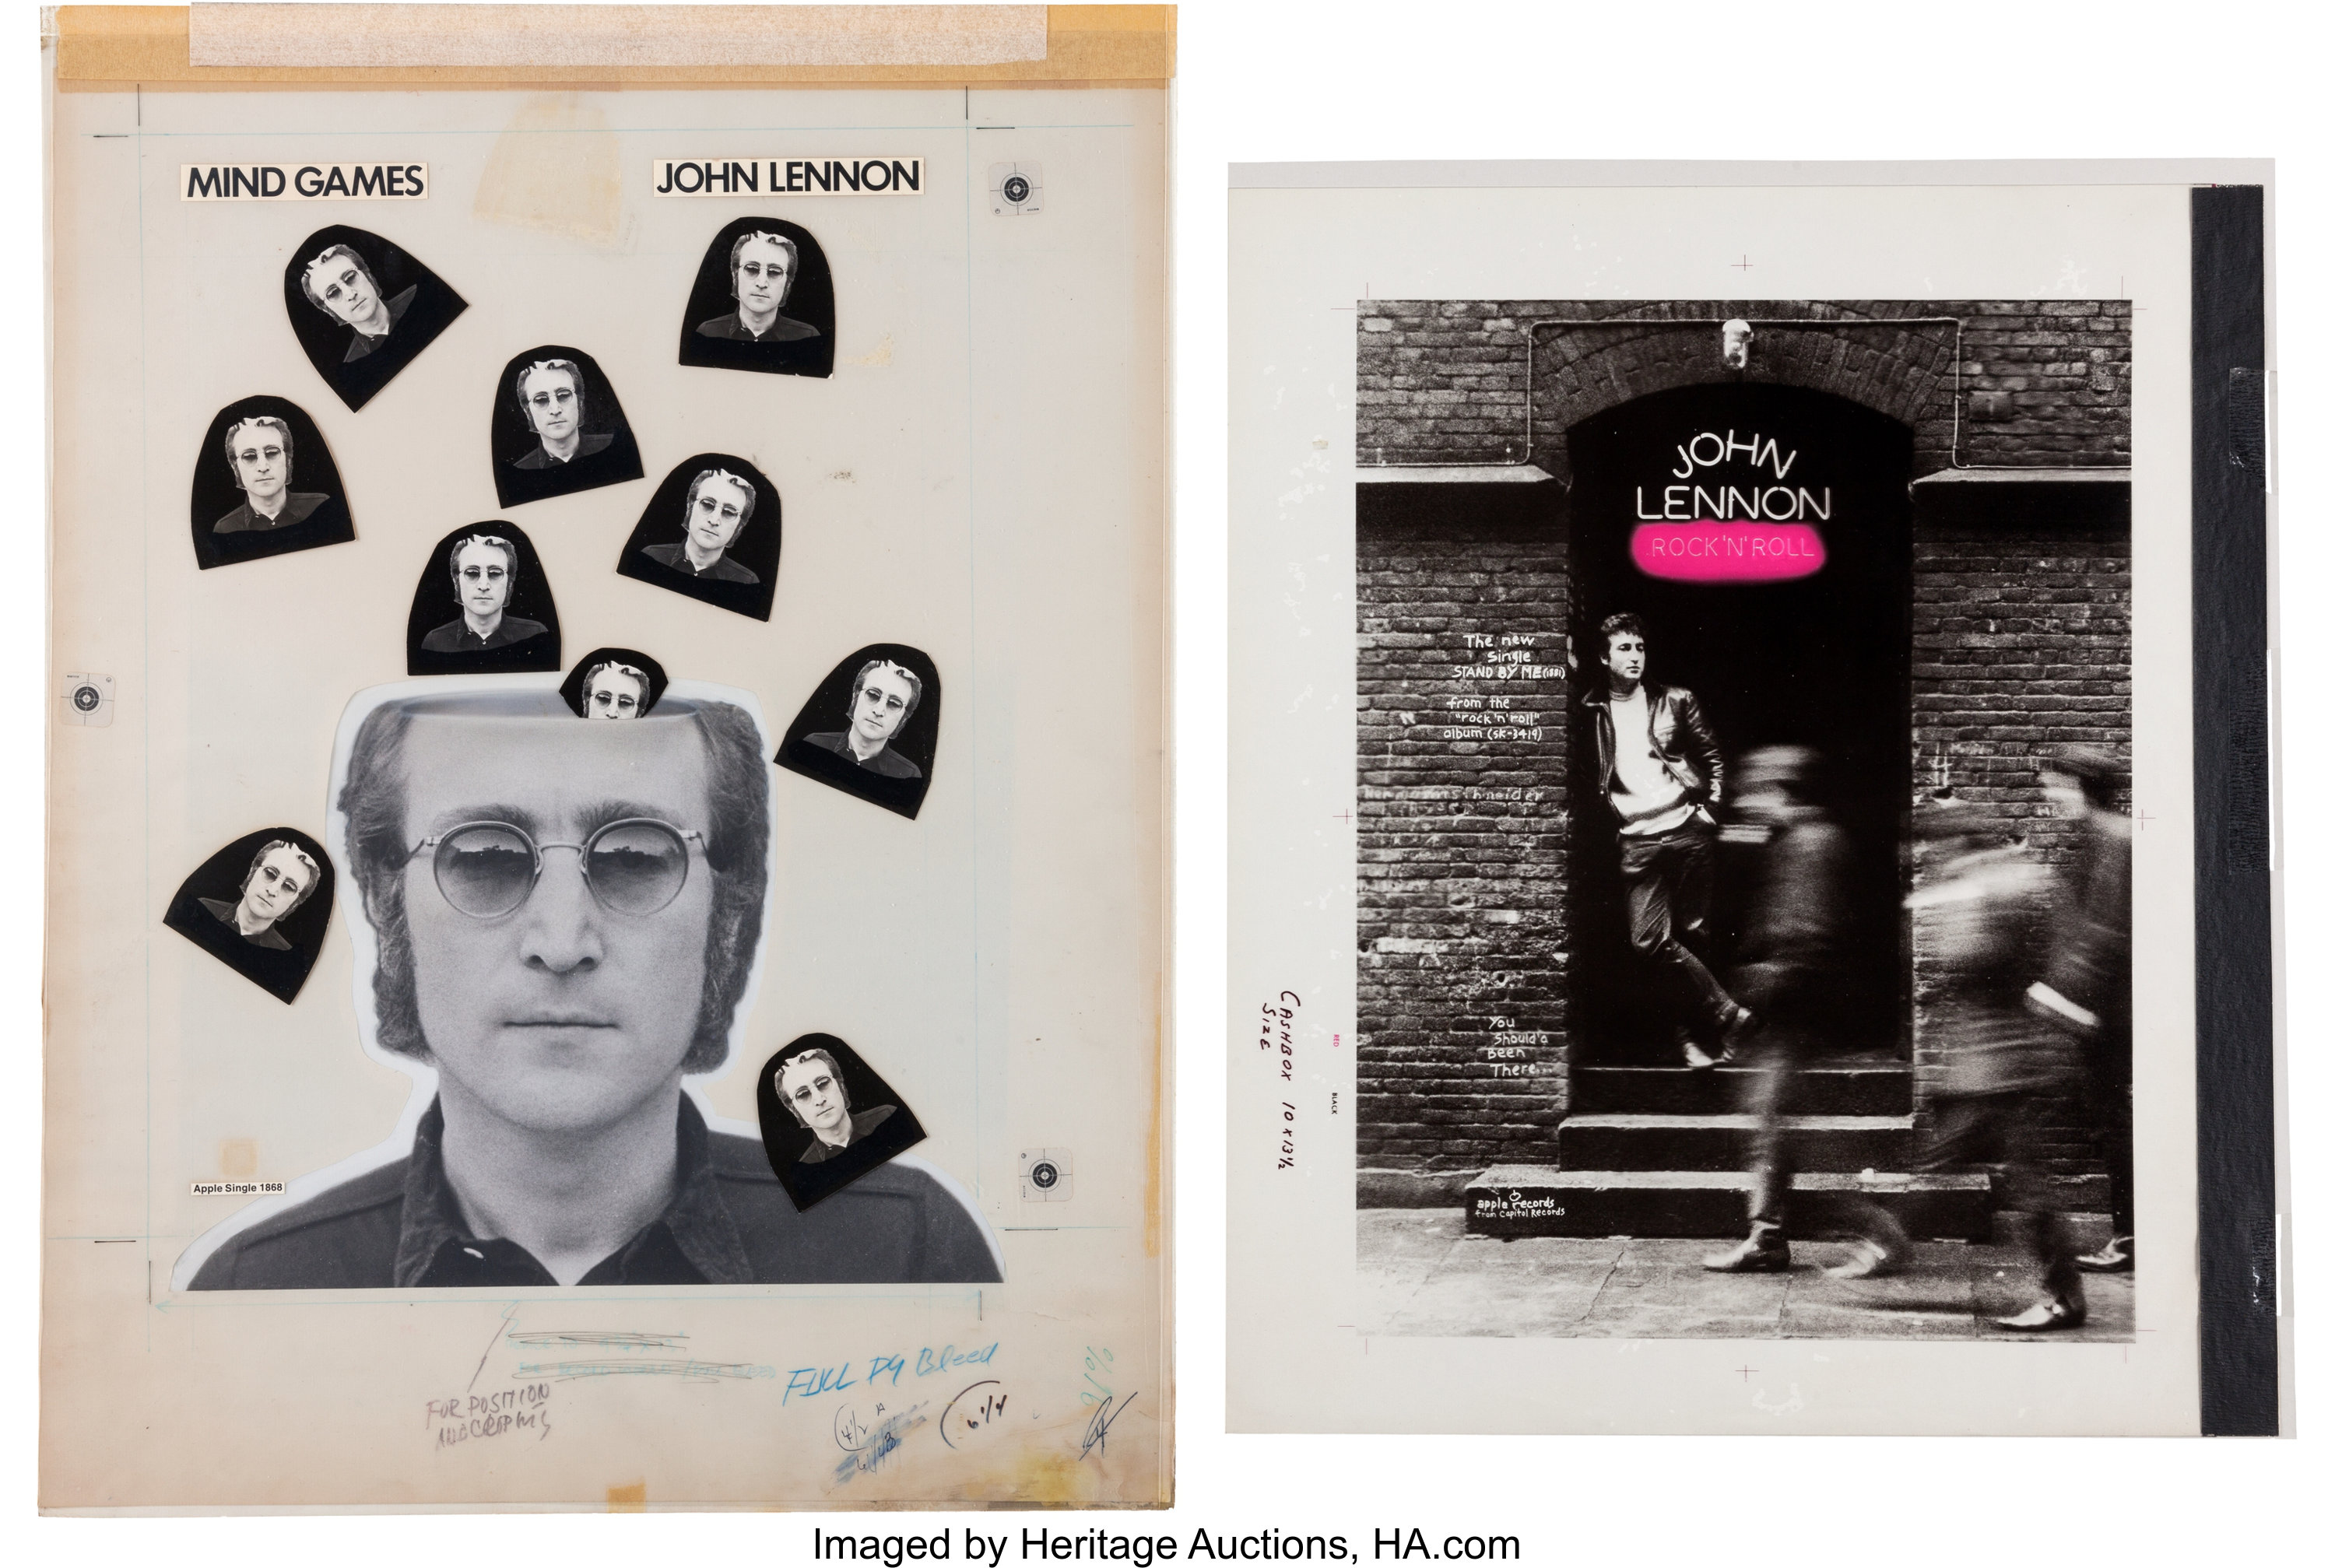 Beatles John Lennon Cashbox Ad Art For Mind Games And Stand By Me Lot 47023 Heritage Auctions